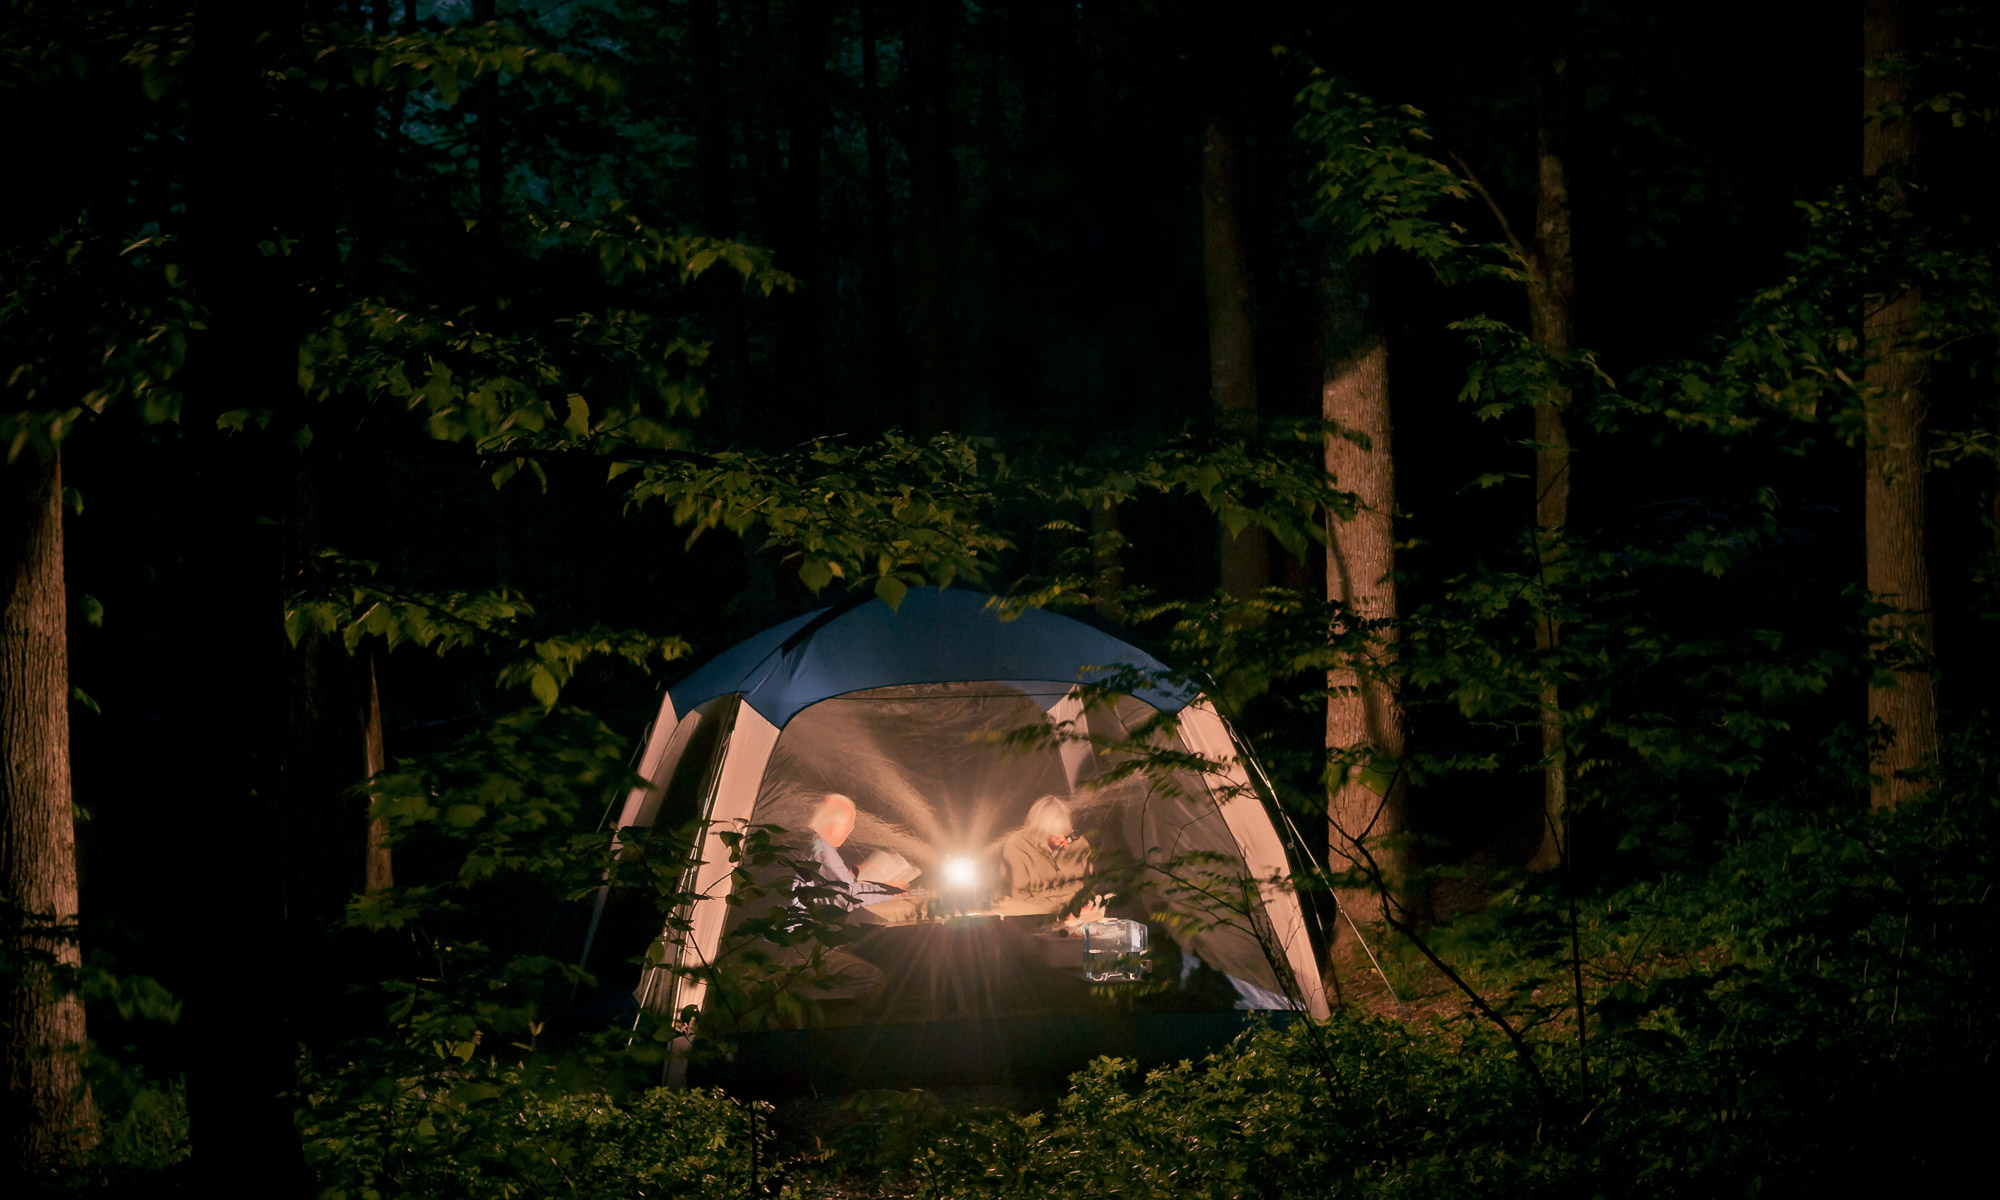 Chiaroscuro in the forest: couple reading by lantern light, Cosby Campground, Great Smoky Mountains National Park, Tennessee